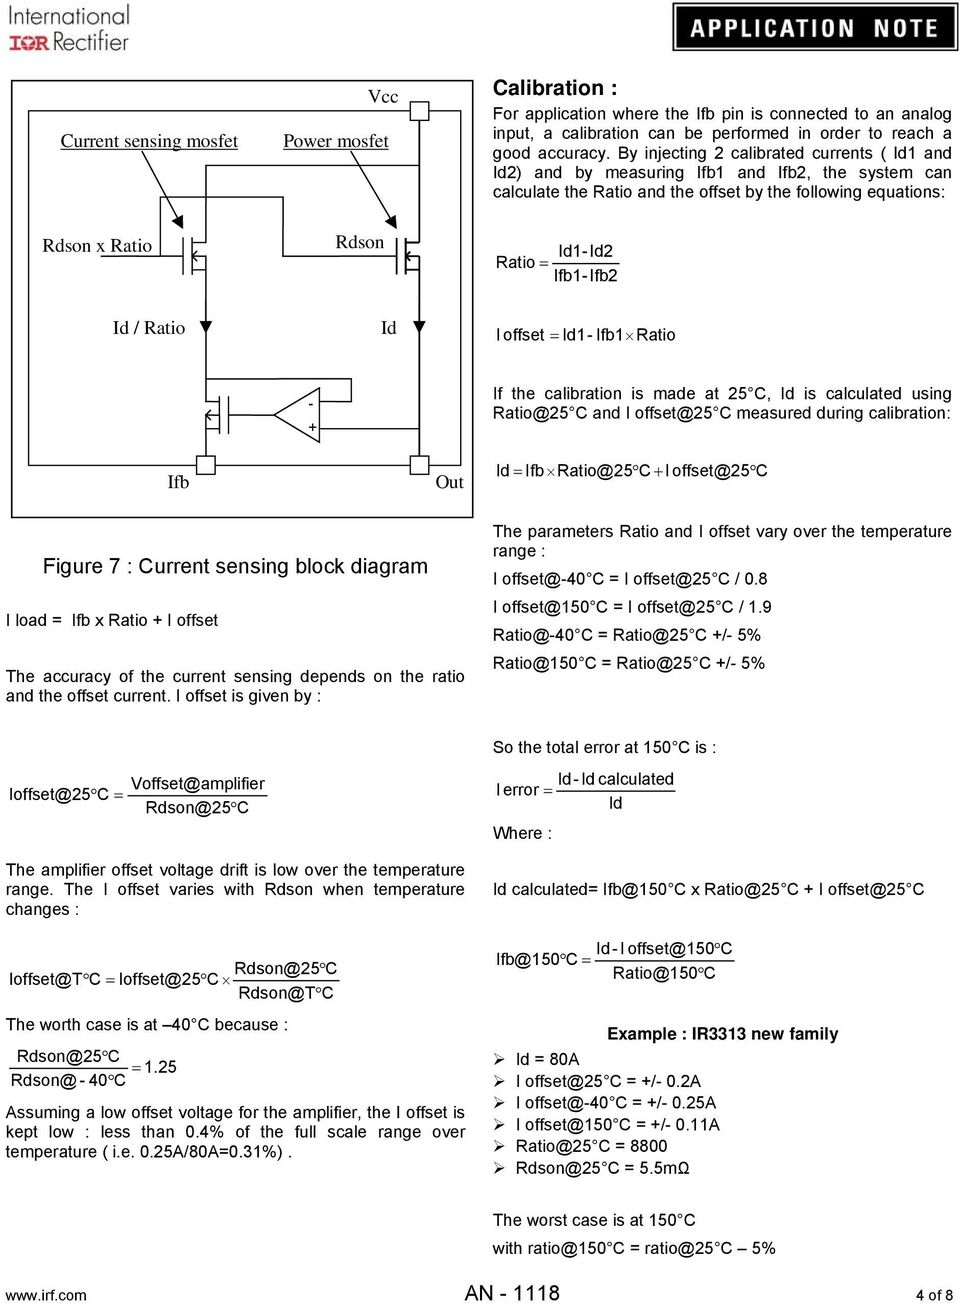 Application Note An Pdf Lm386 As Btl Amplifier Circuit Diagram Amplifiercircuit Ratio Id I Offset Id1 1 If The Calibration Is Made